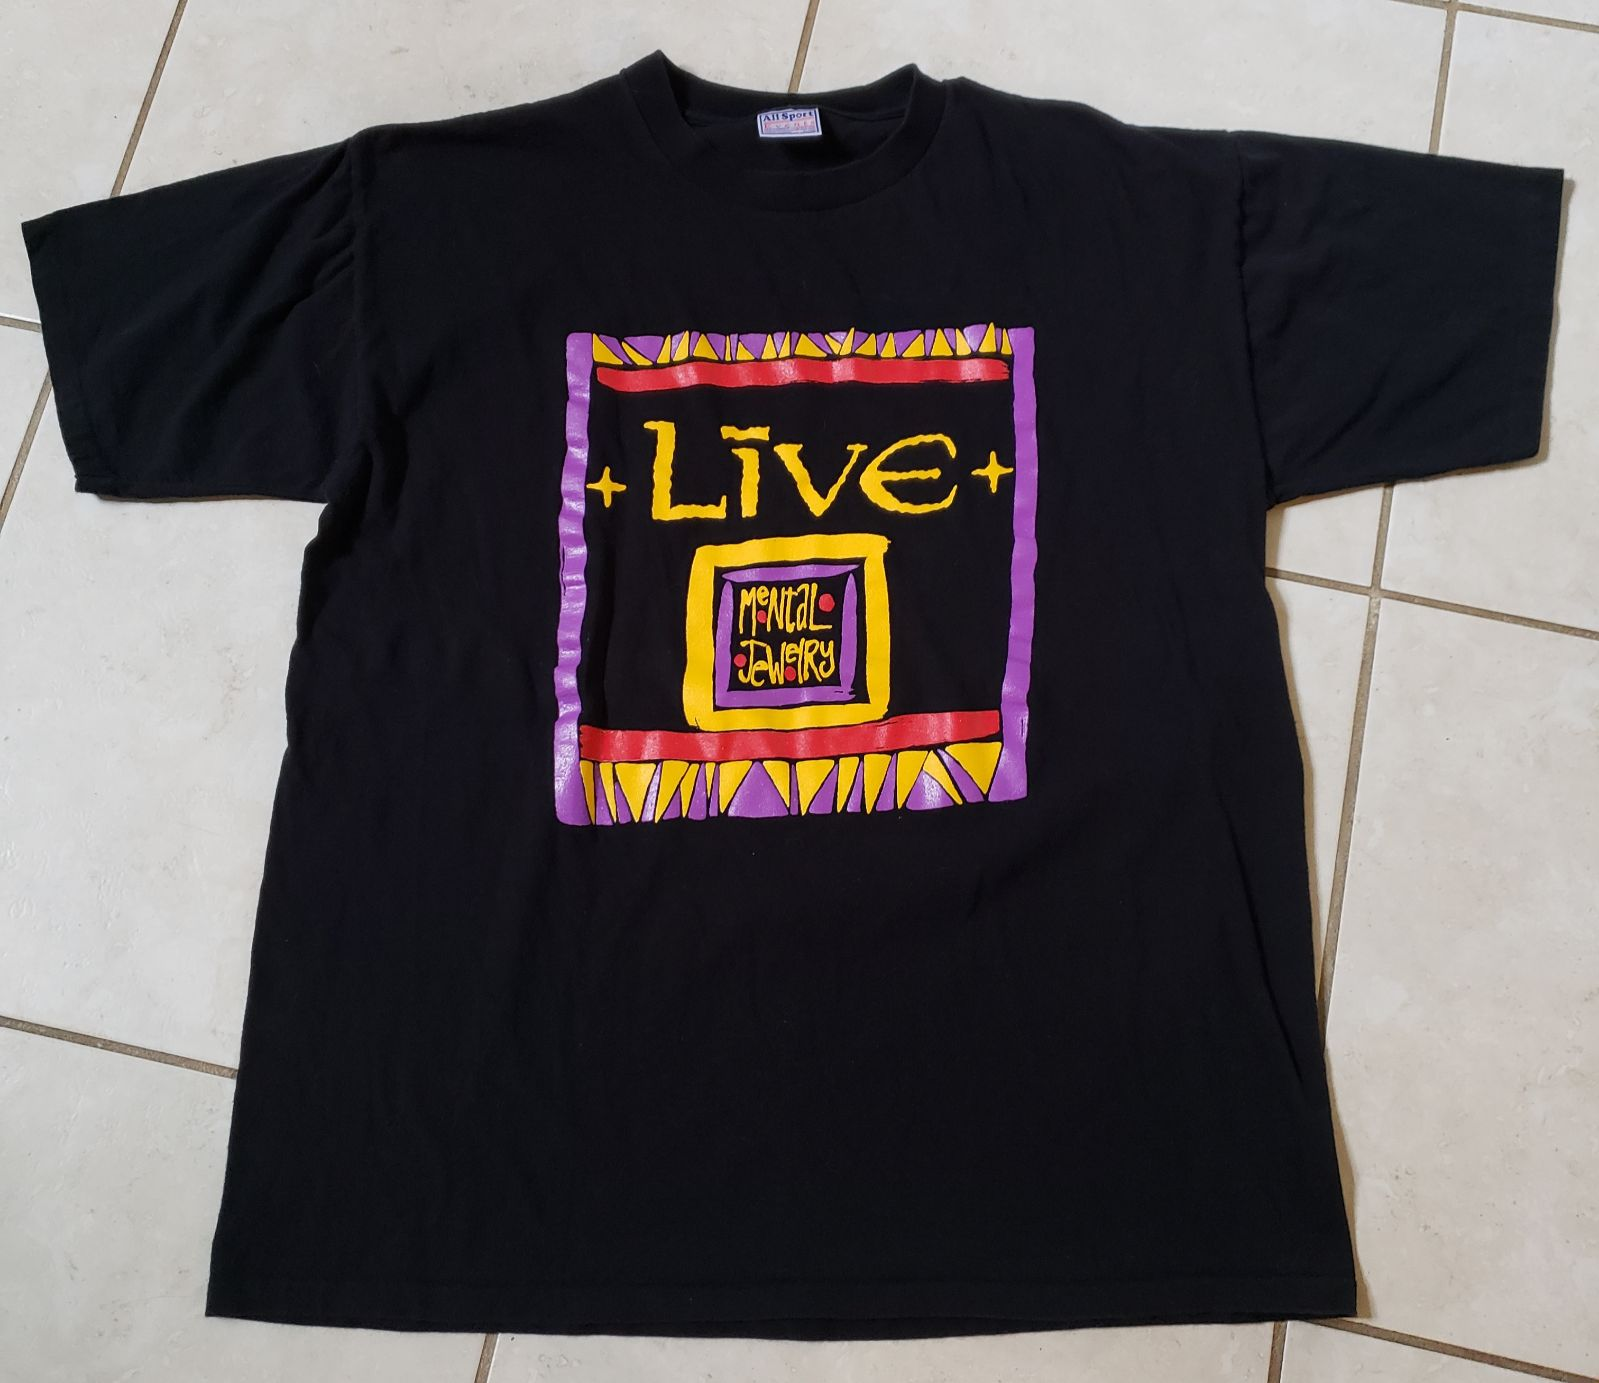 LIVE MENTAL JEWELRY CONCERT TOUR SHIRT